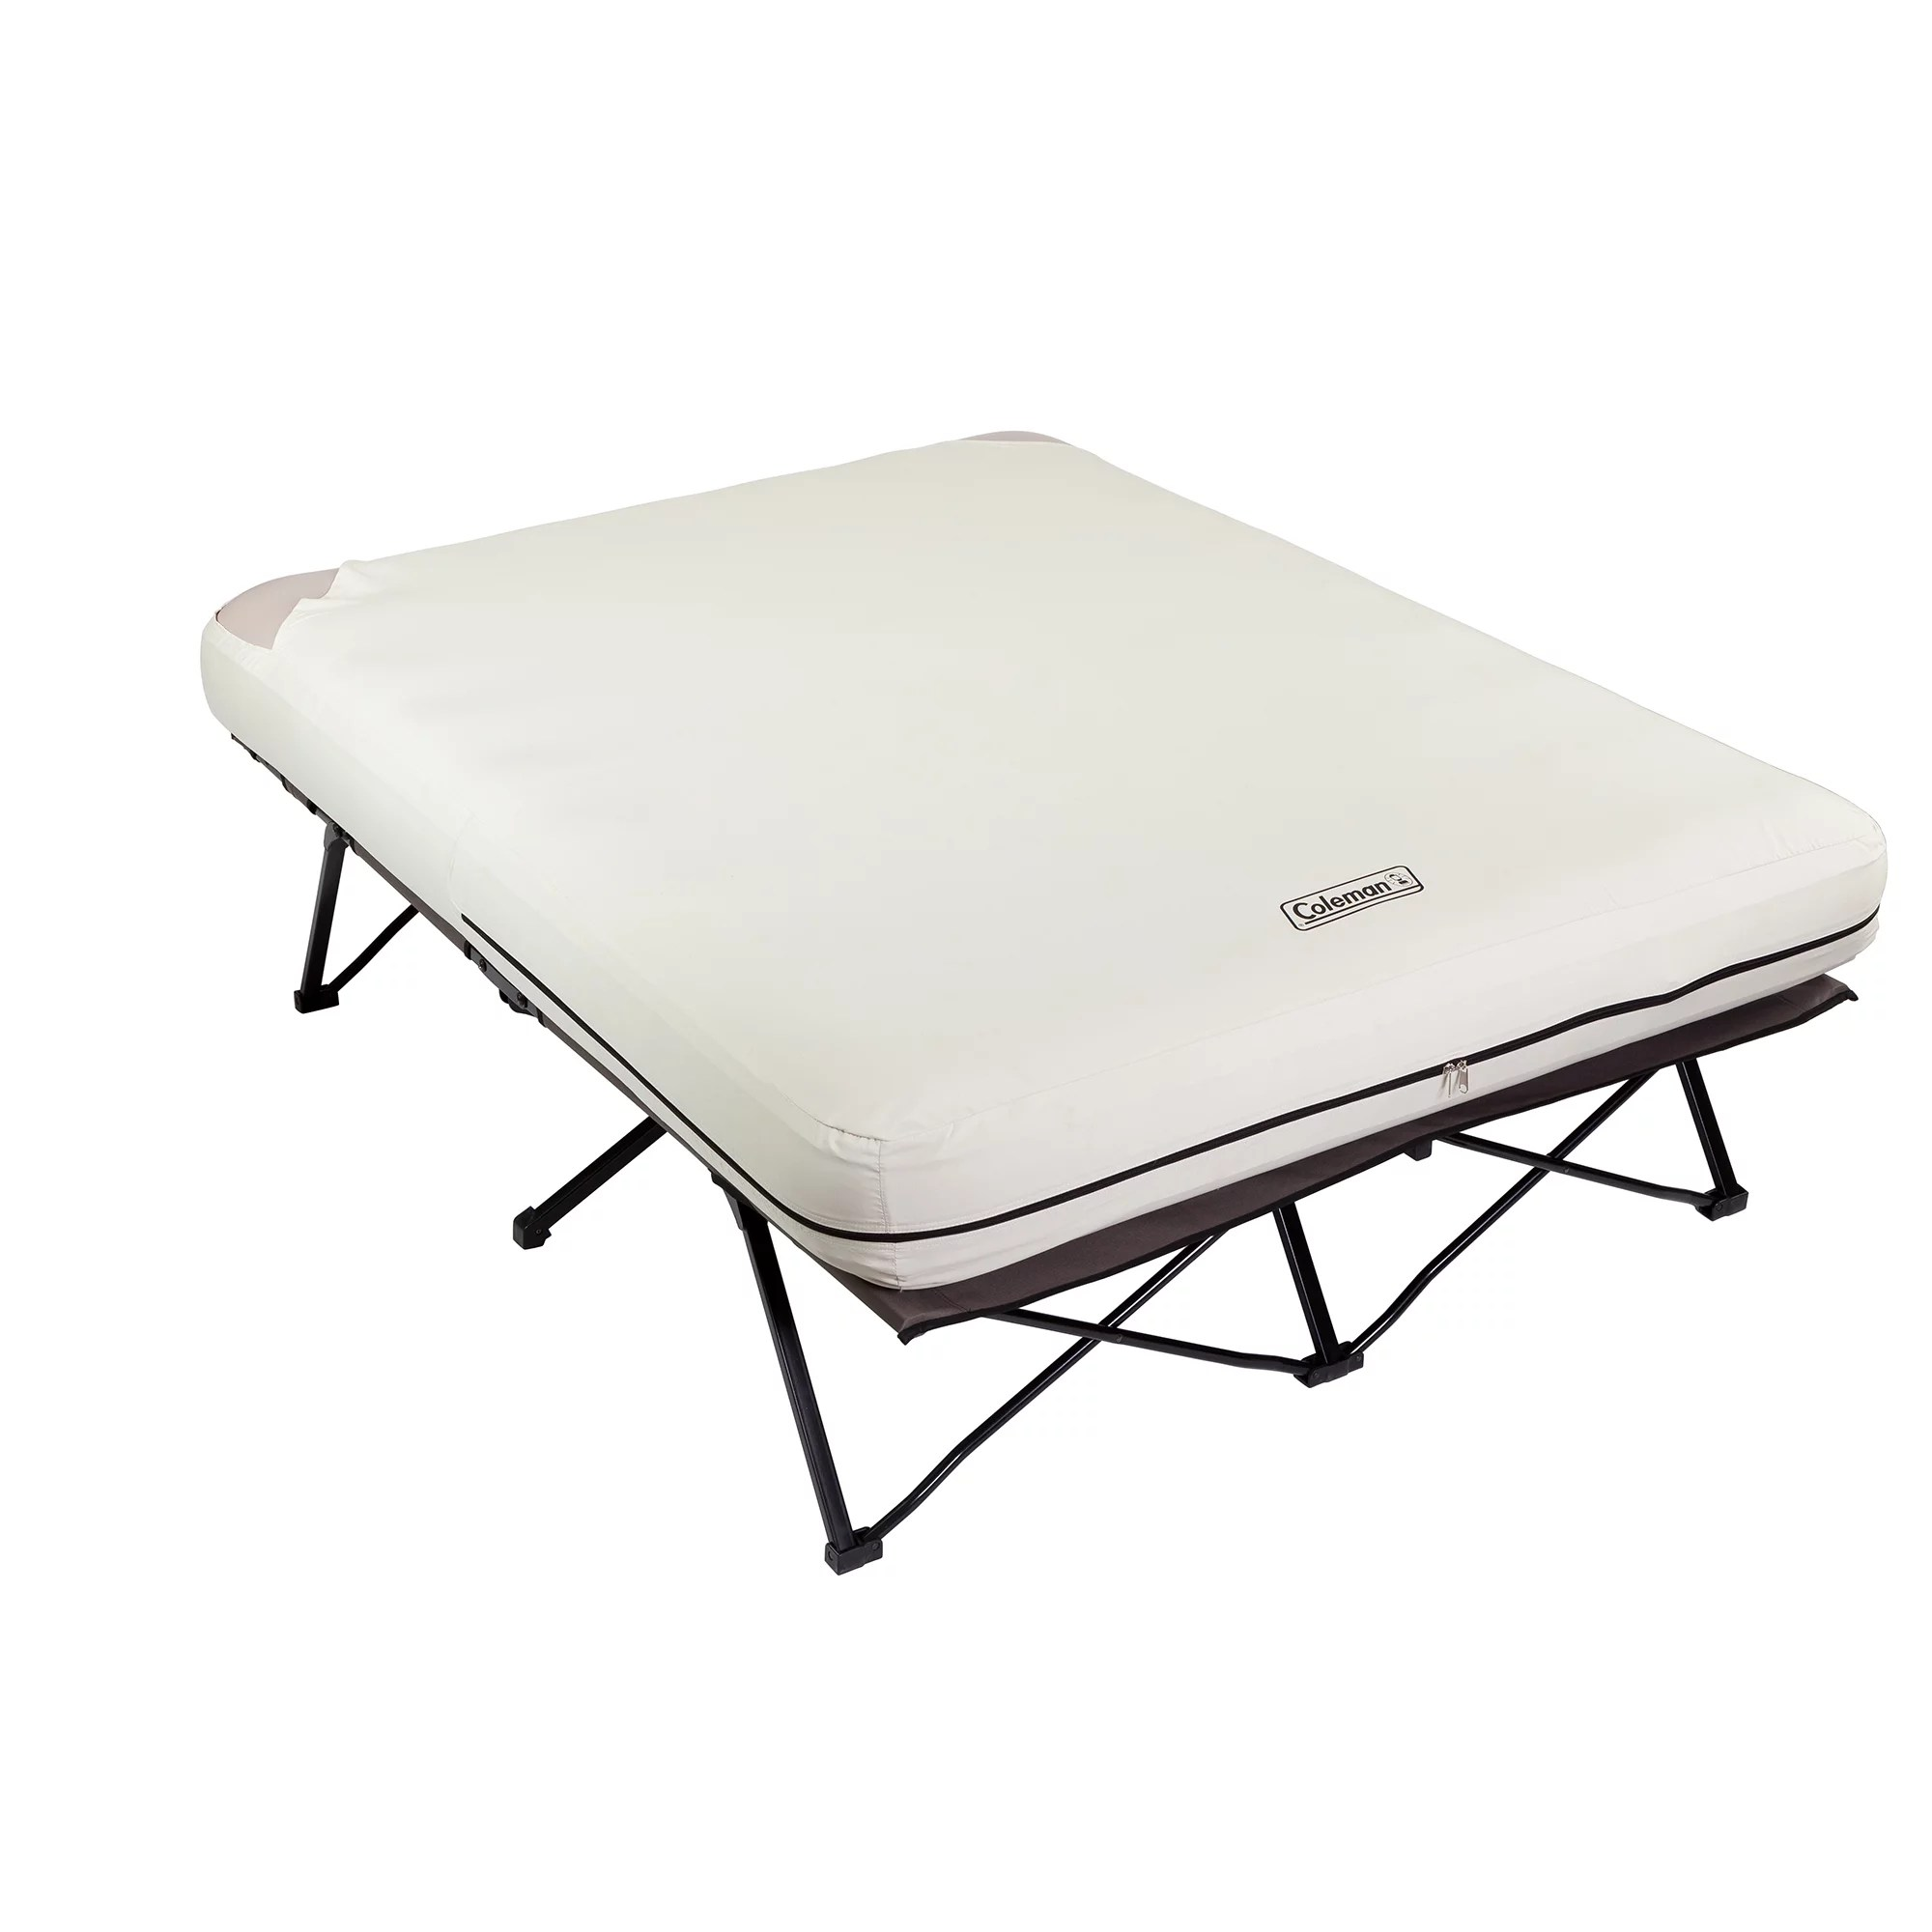 Queen Air Mattress Cot Coleman Folding Airbed With Side Tables And 4d Battery Pump Queen